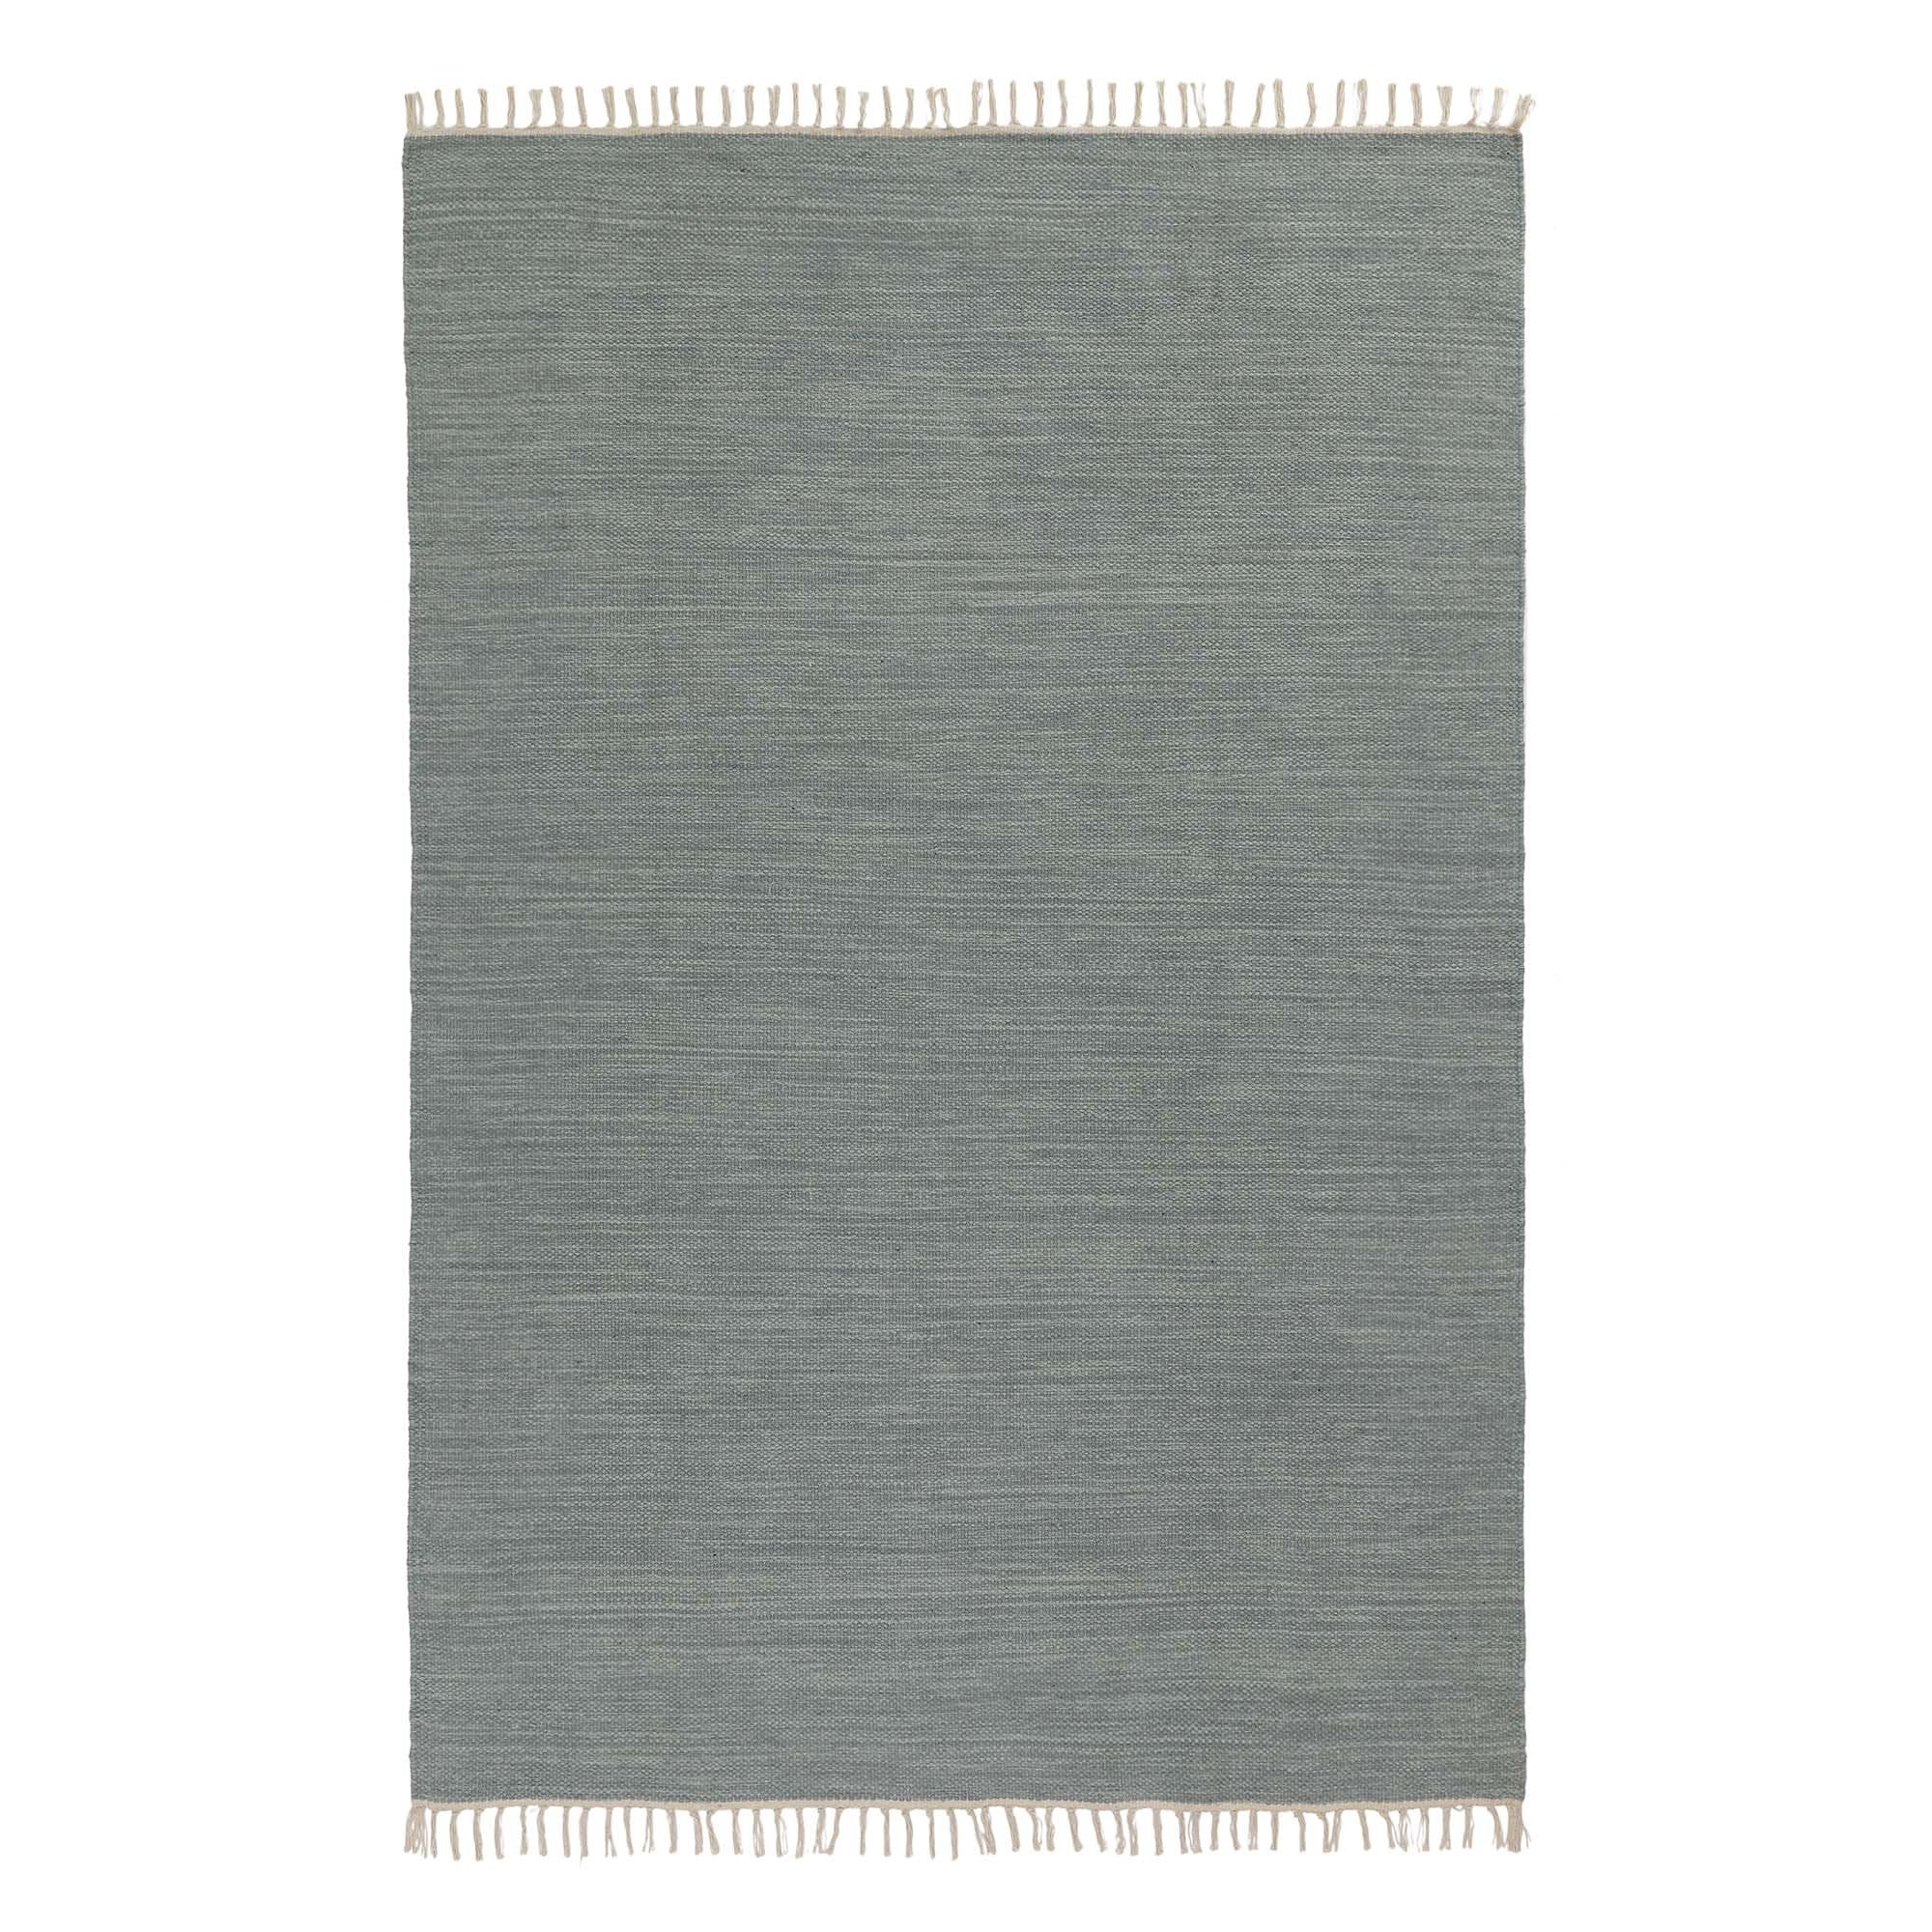 Green grey melange Akora Teppich | Home & Living inspiration | URBANARA